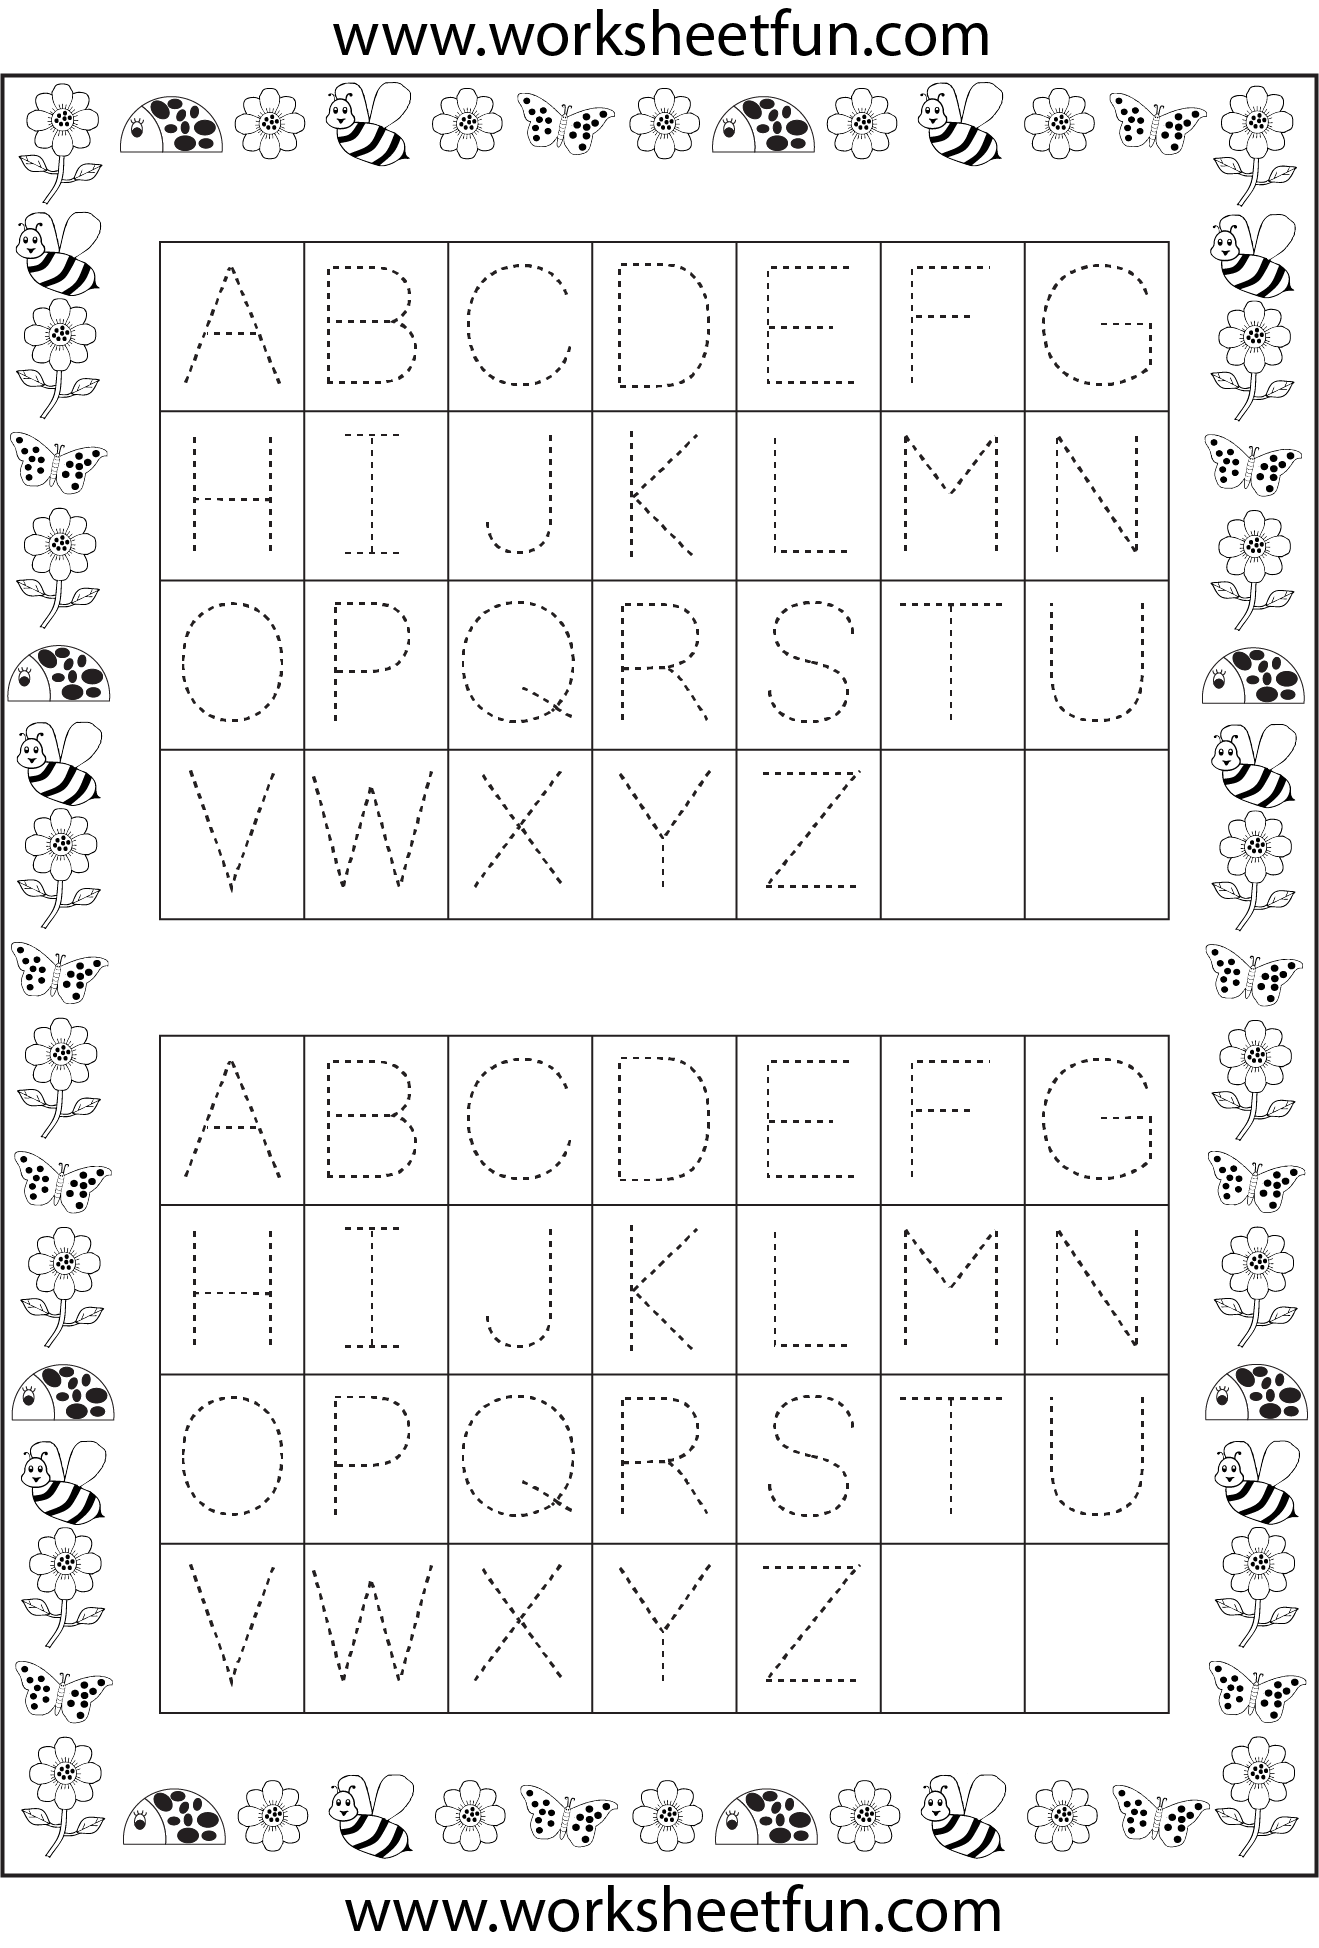 Oodles Of Letter And Number Tracing Sheets